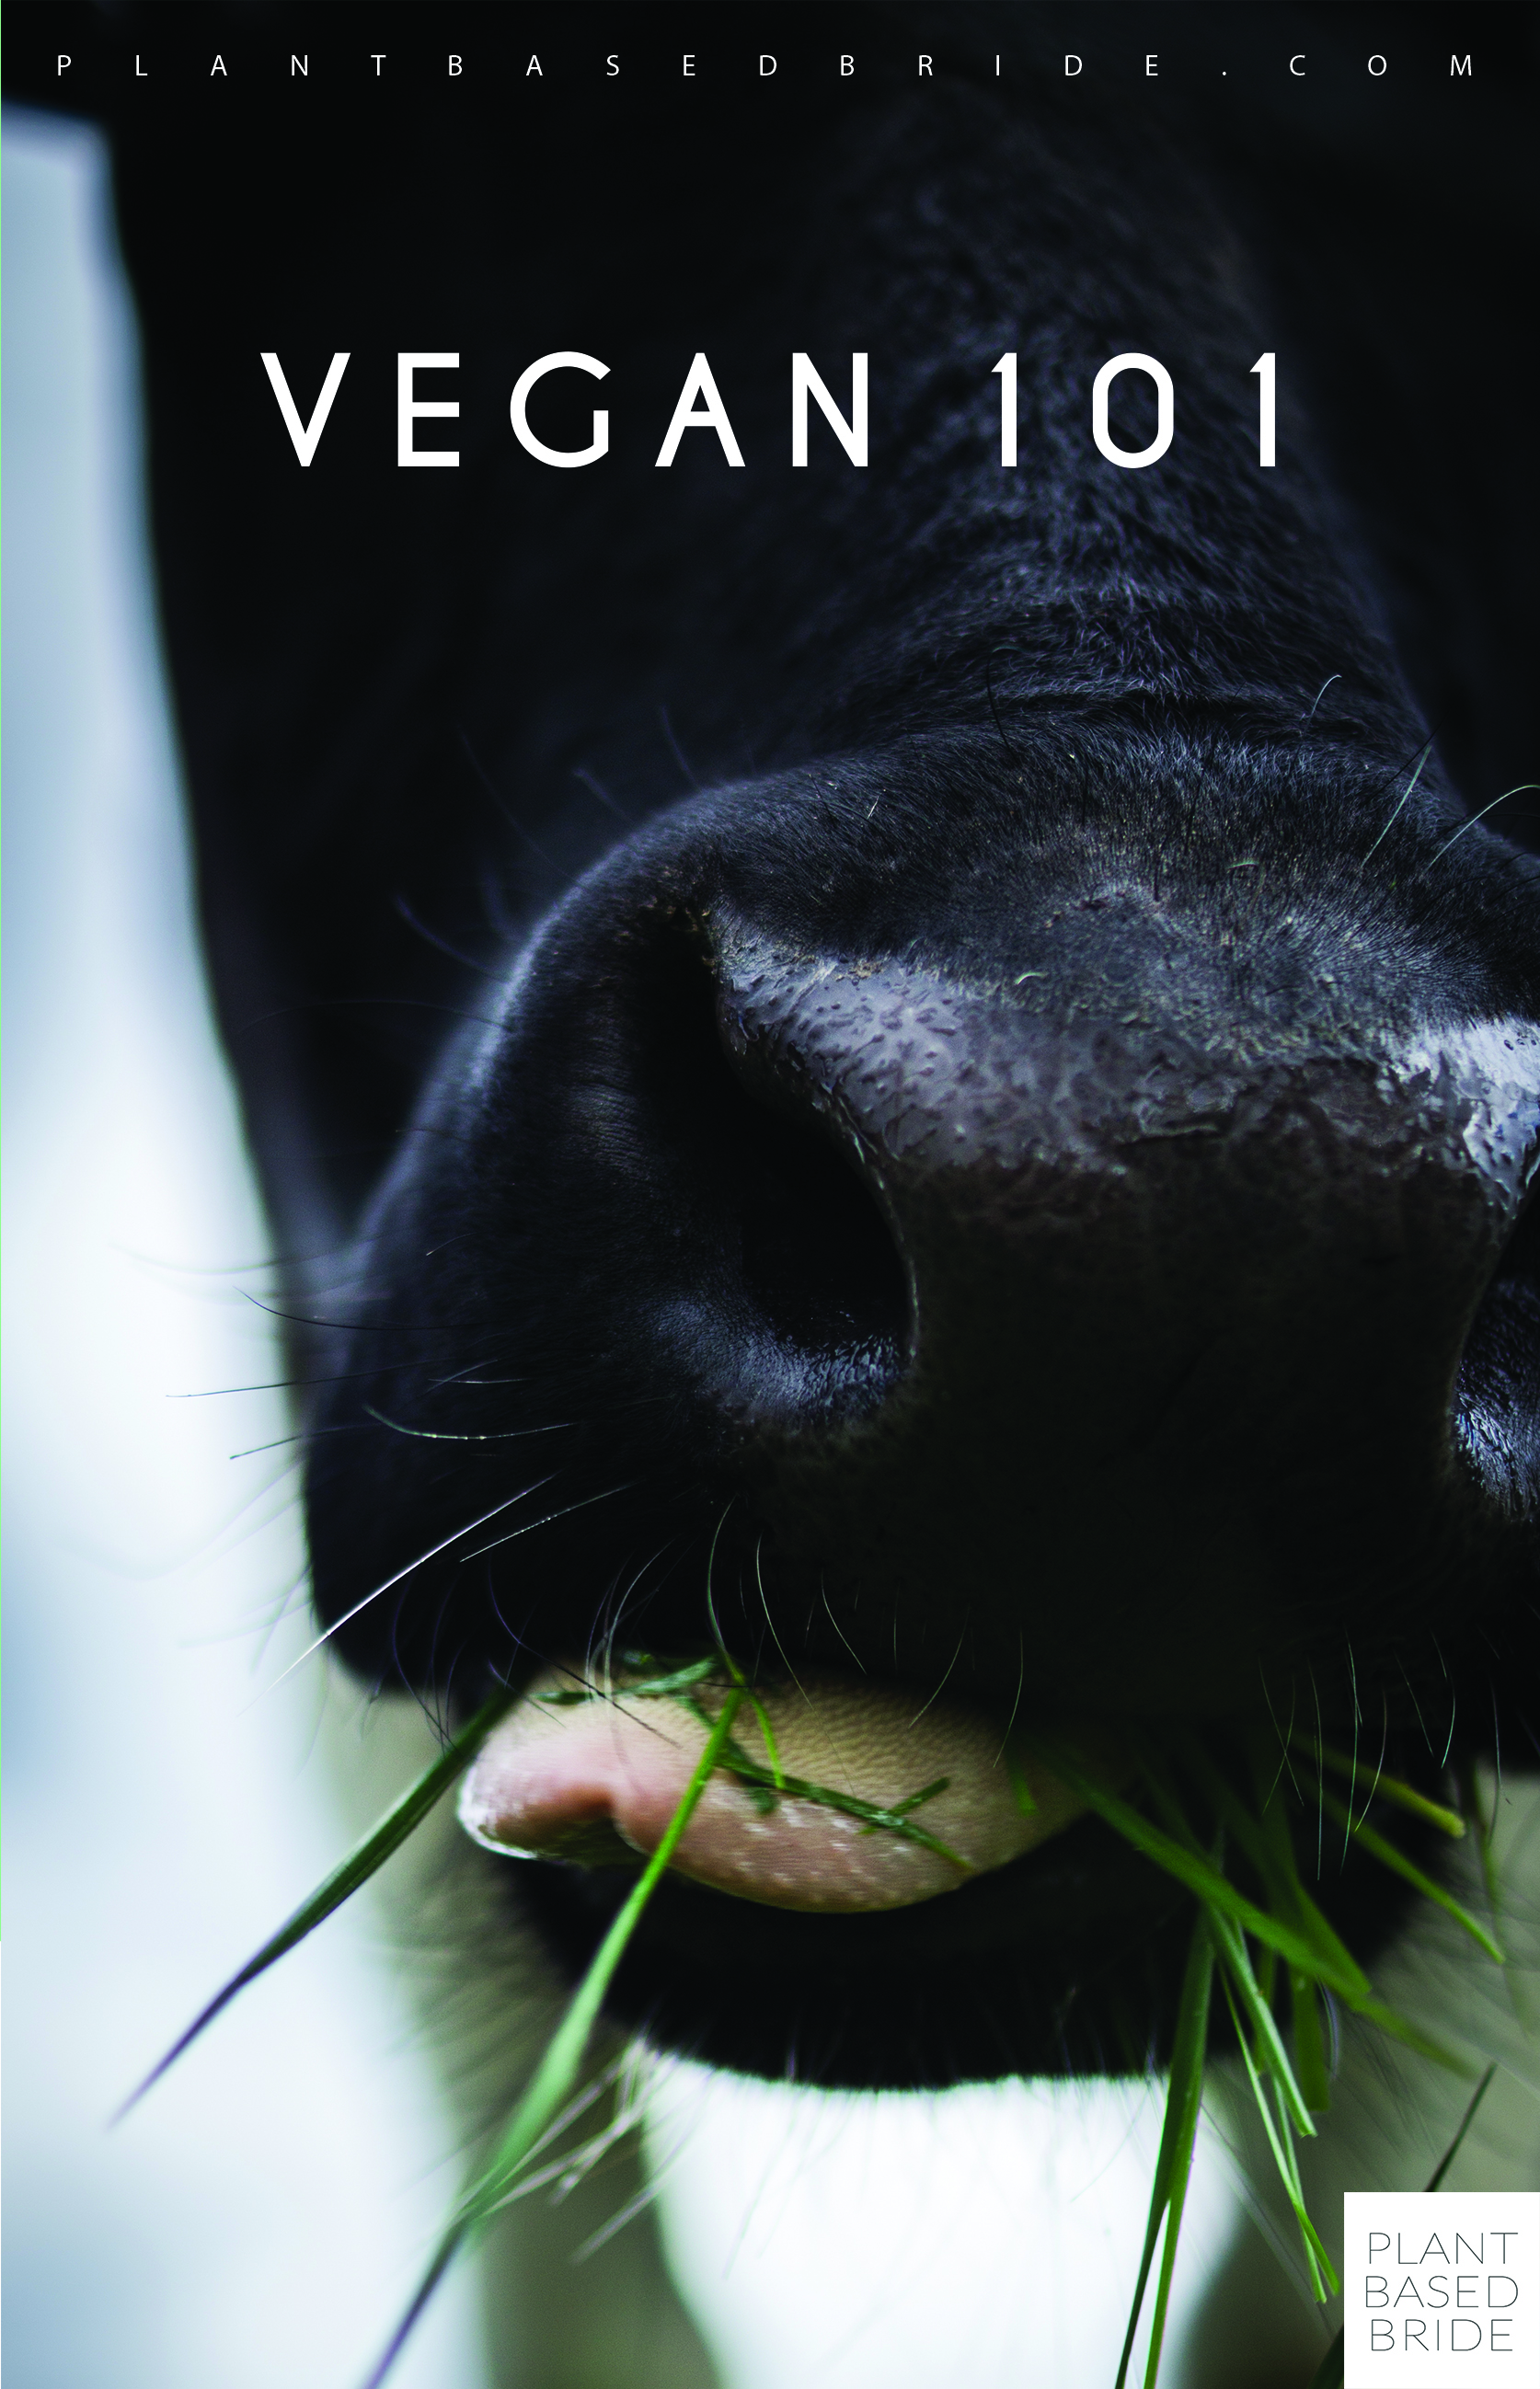 Get your FREE Vegan 101 info booklet in time for Veganuary!